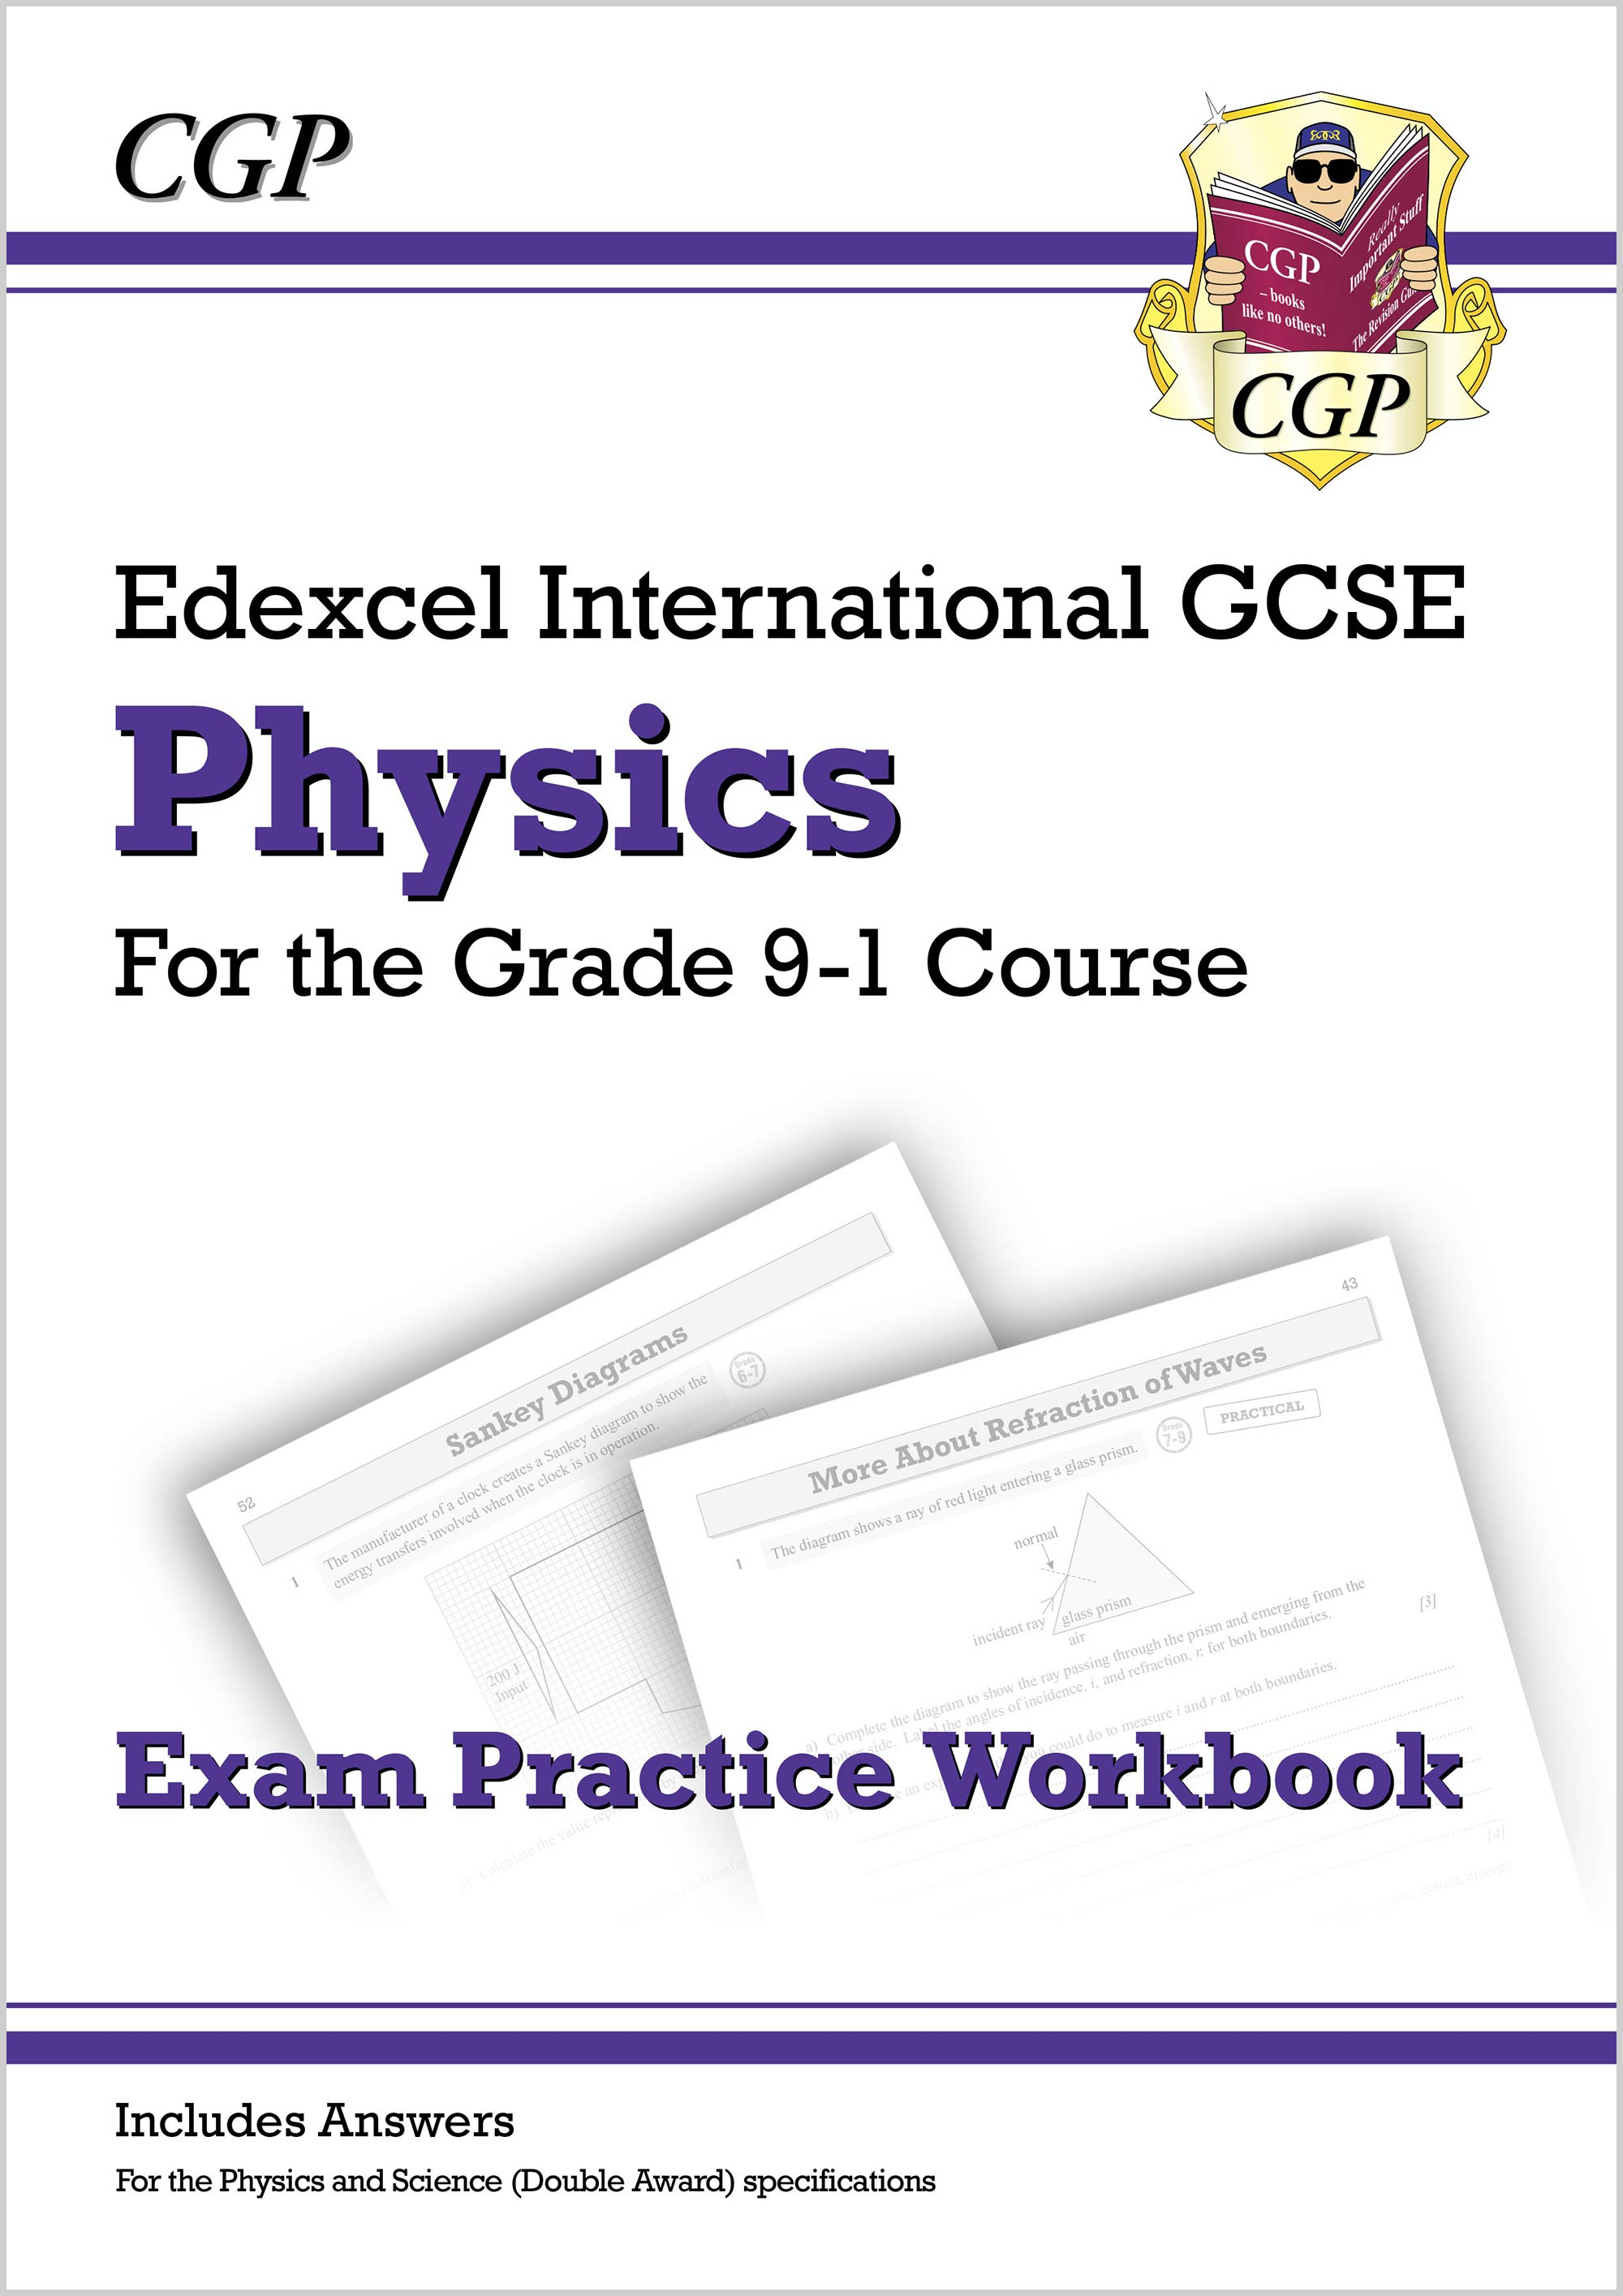 PEQI42D - New Grade 9-1 Edexcel International GCSE Physics: Exam Practice Workbook (includes Answers